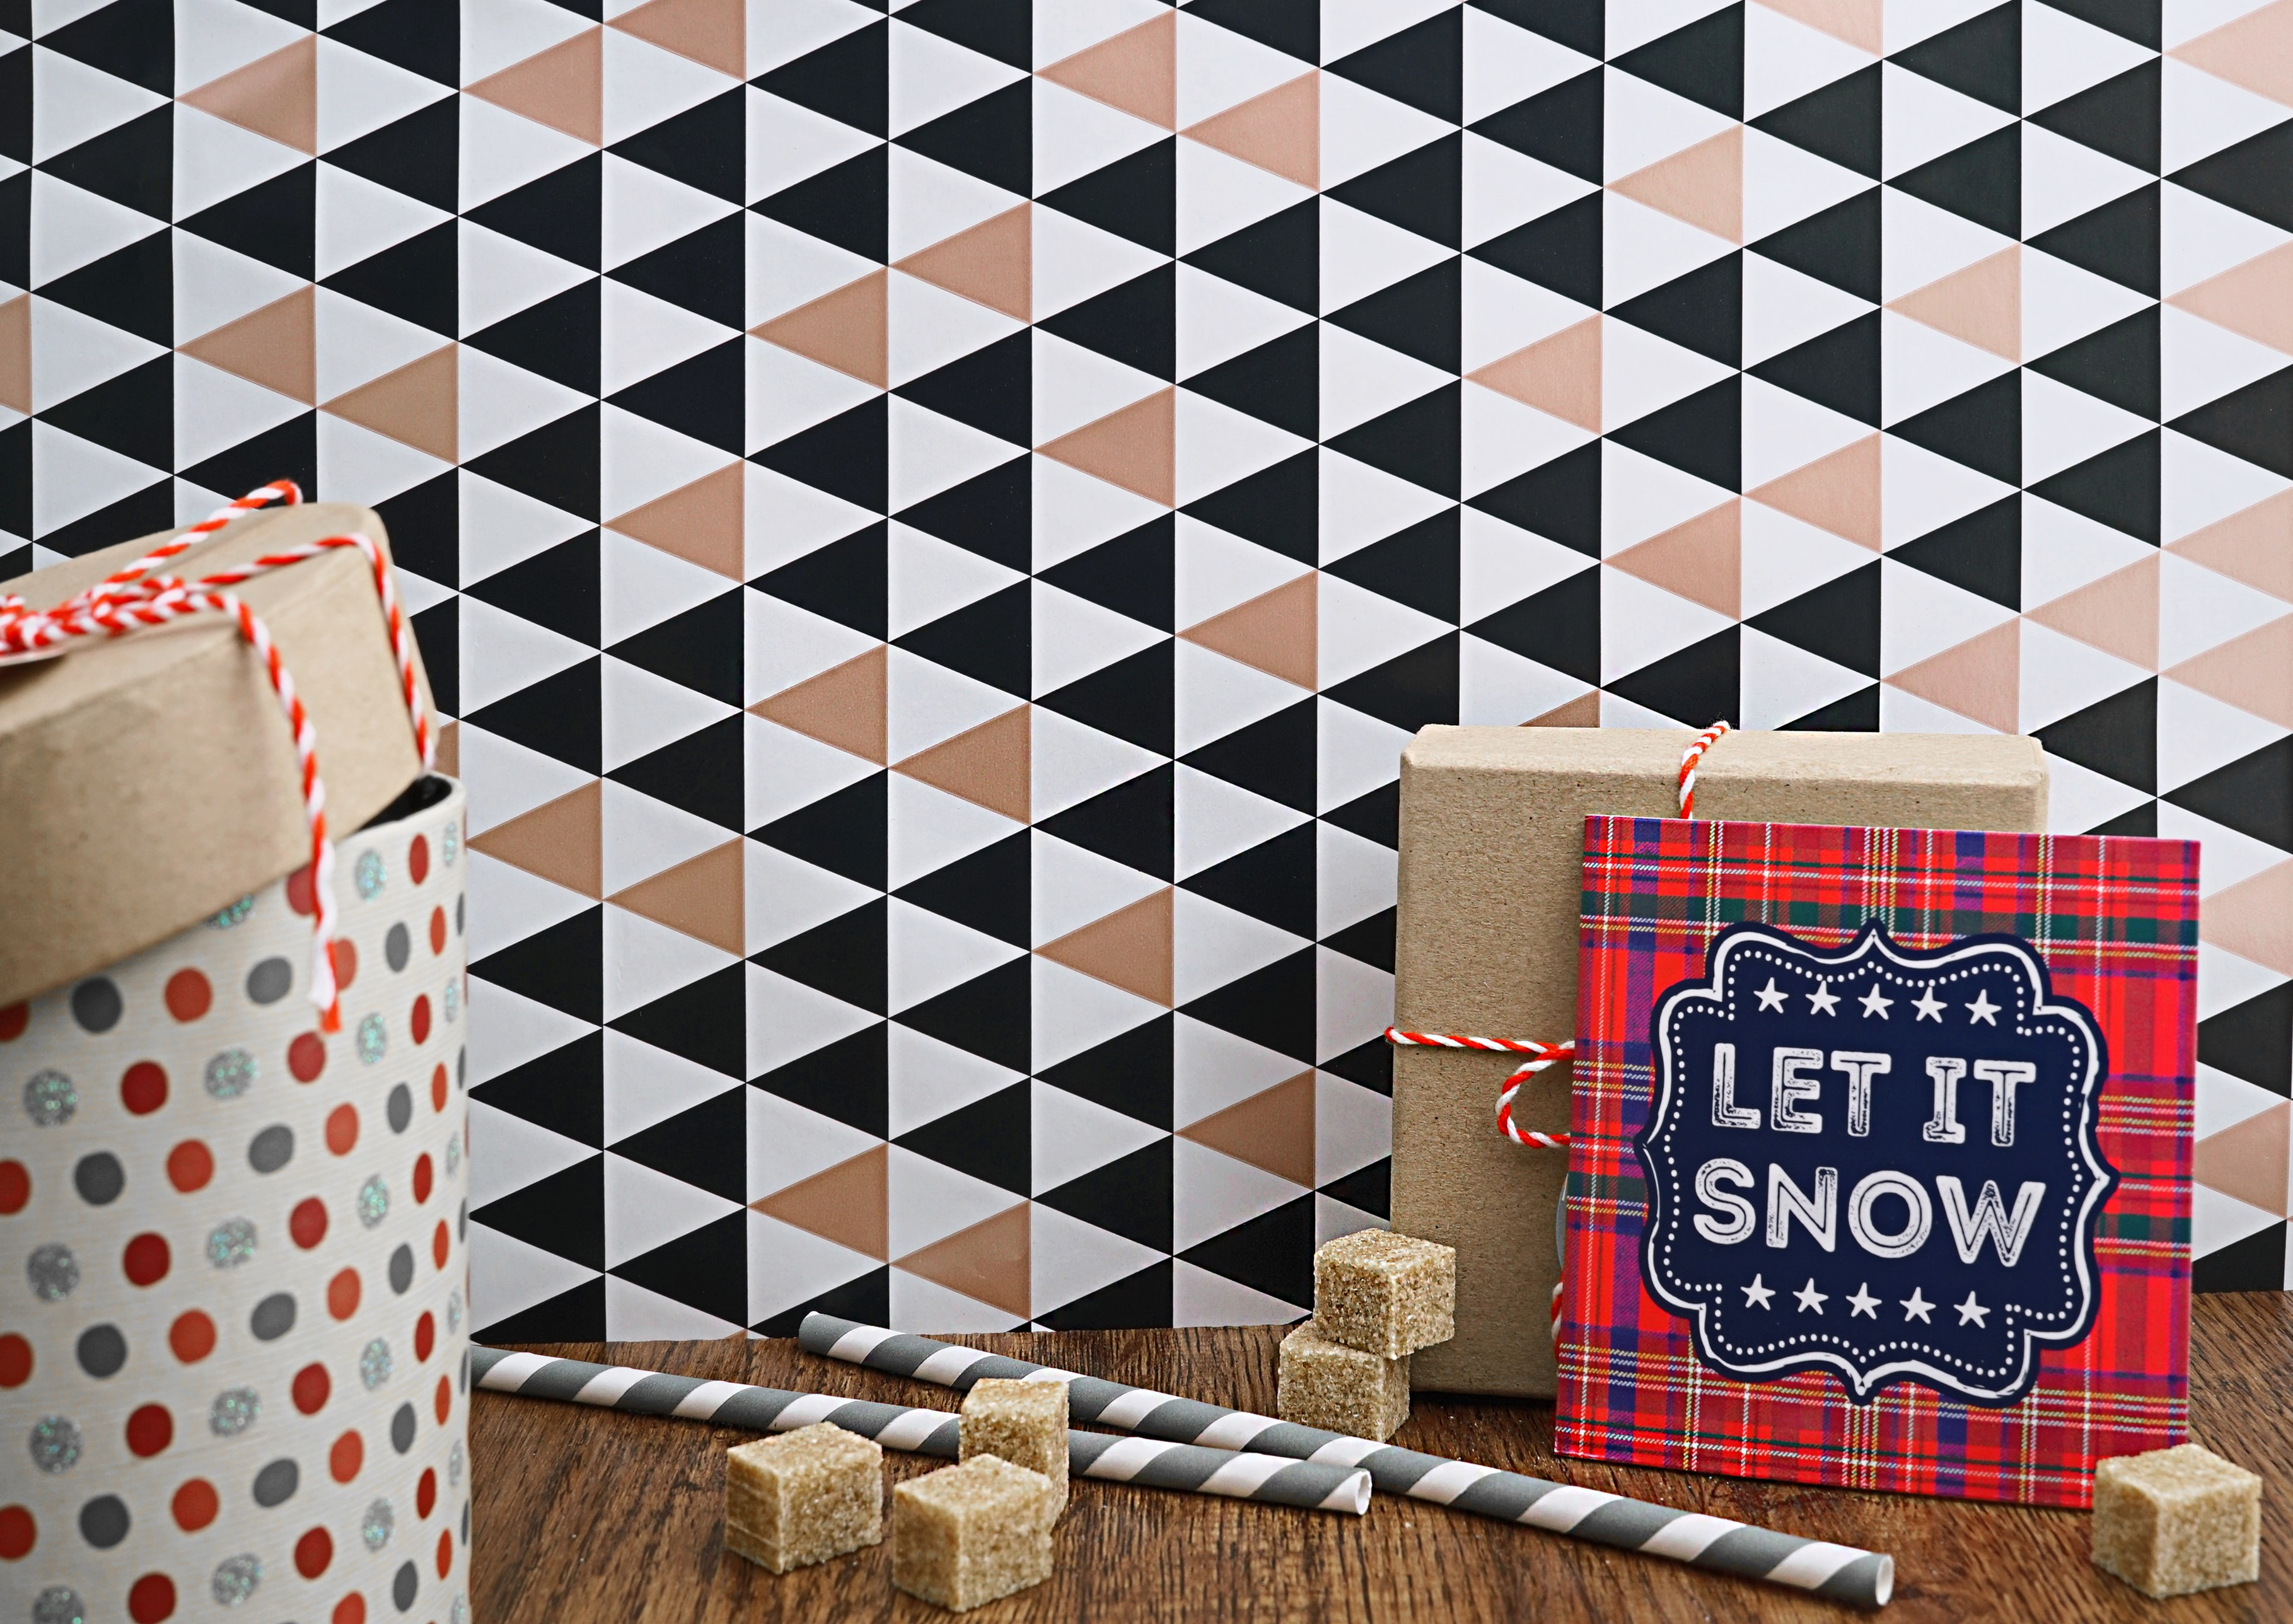 red and black Let It Snow greeting card artwork